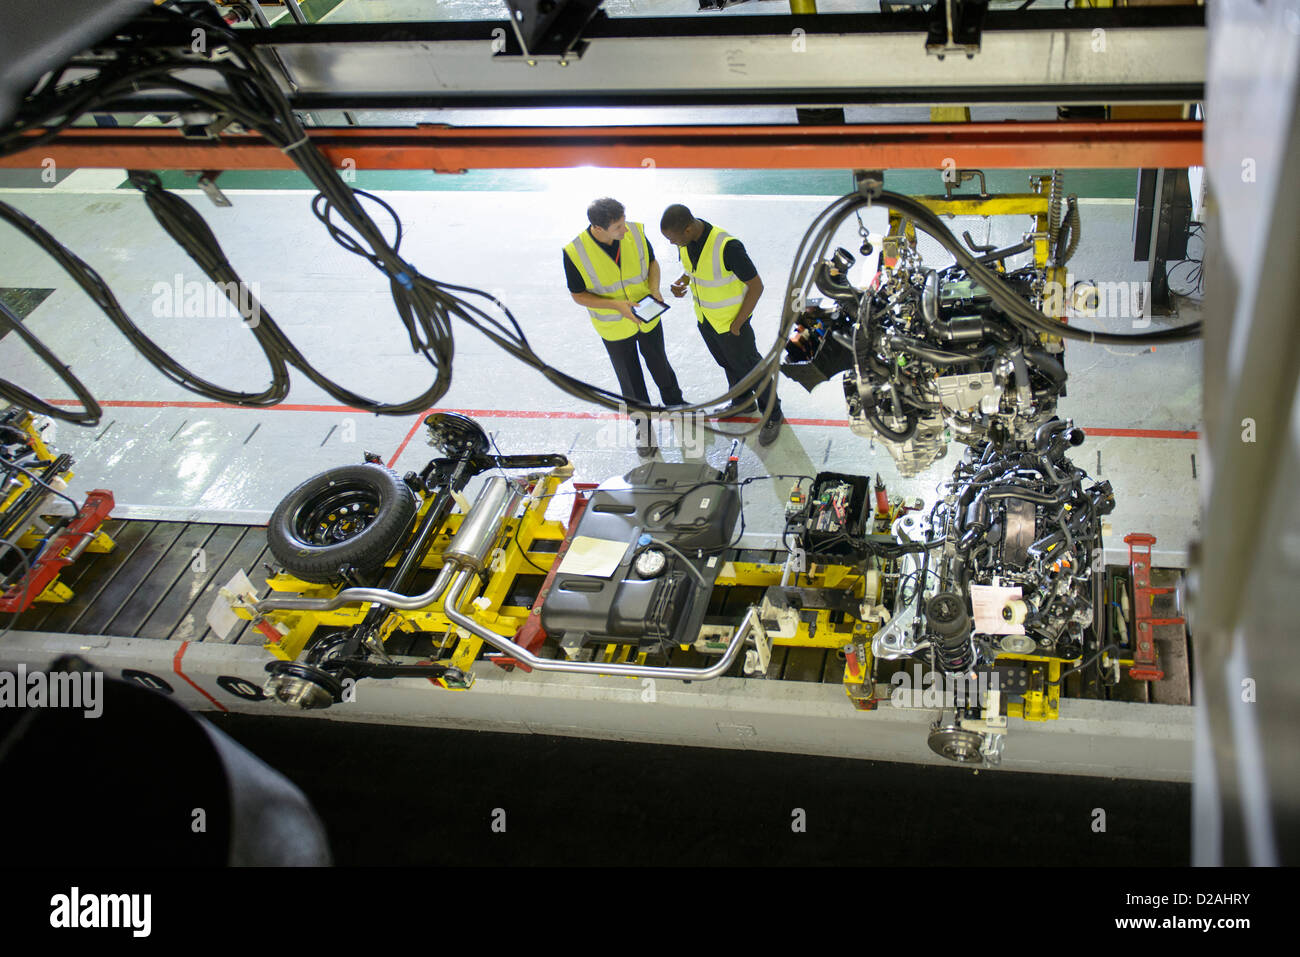 Workers talking in car factory - Stock Image